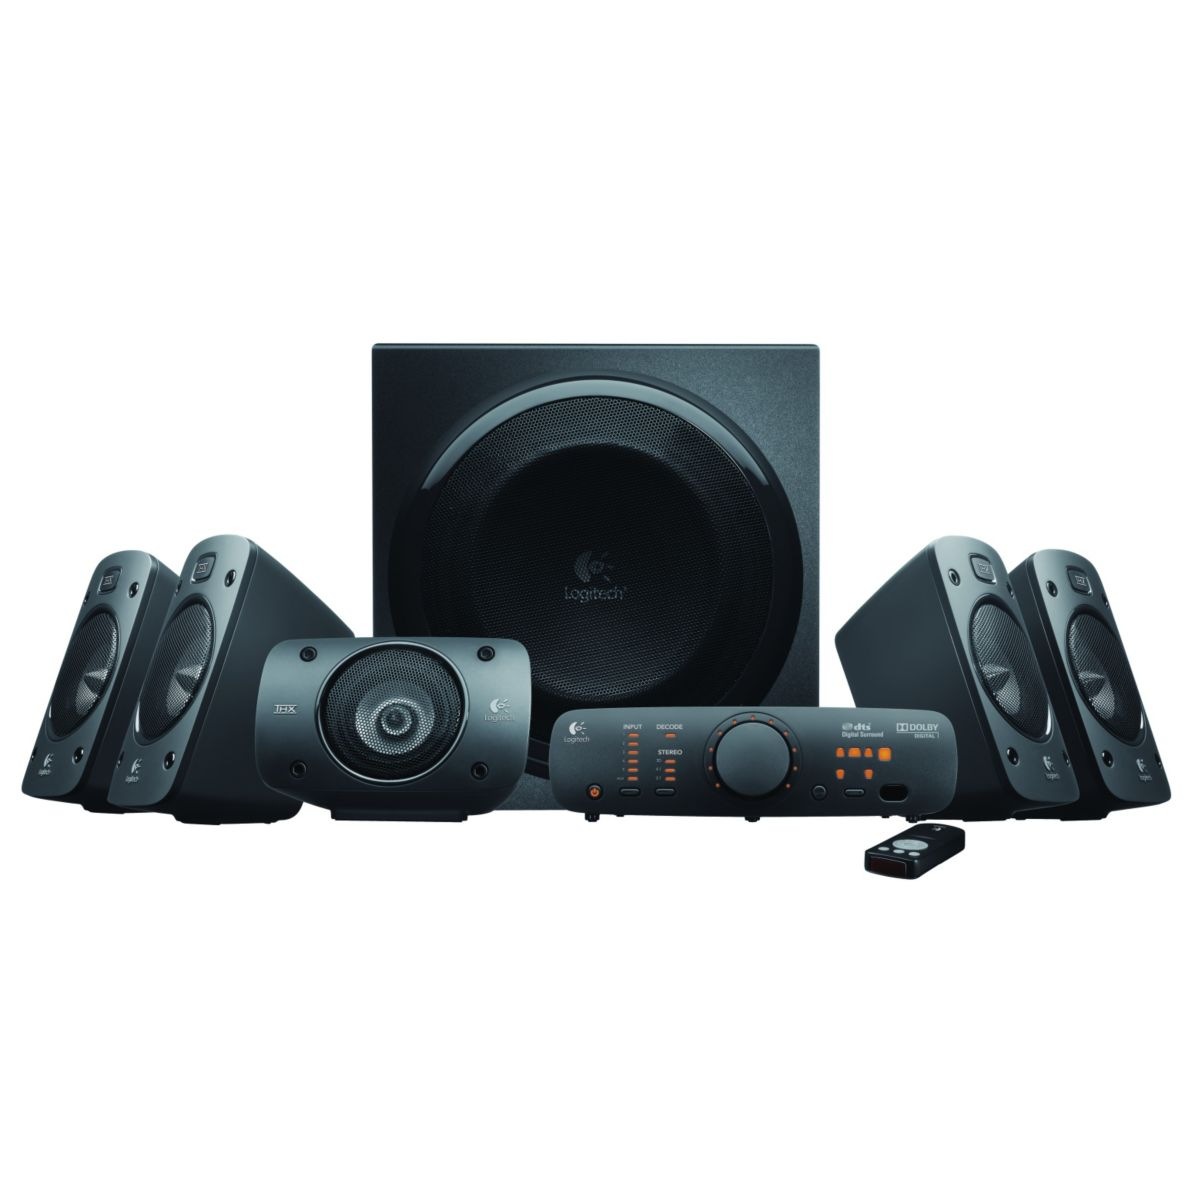 Enceintes 5.1 LOGITECH Z906 THX Surround